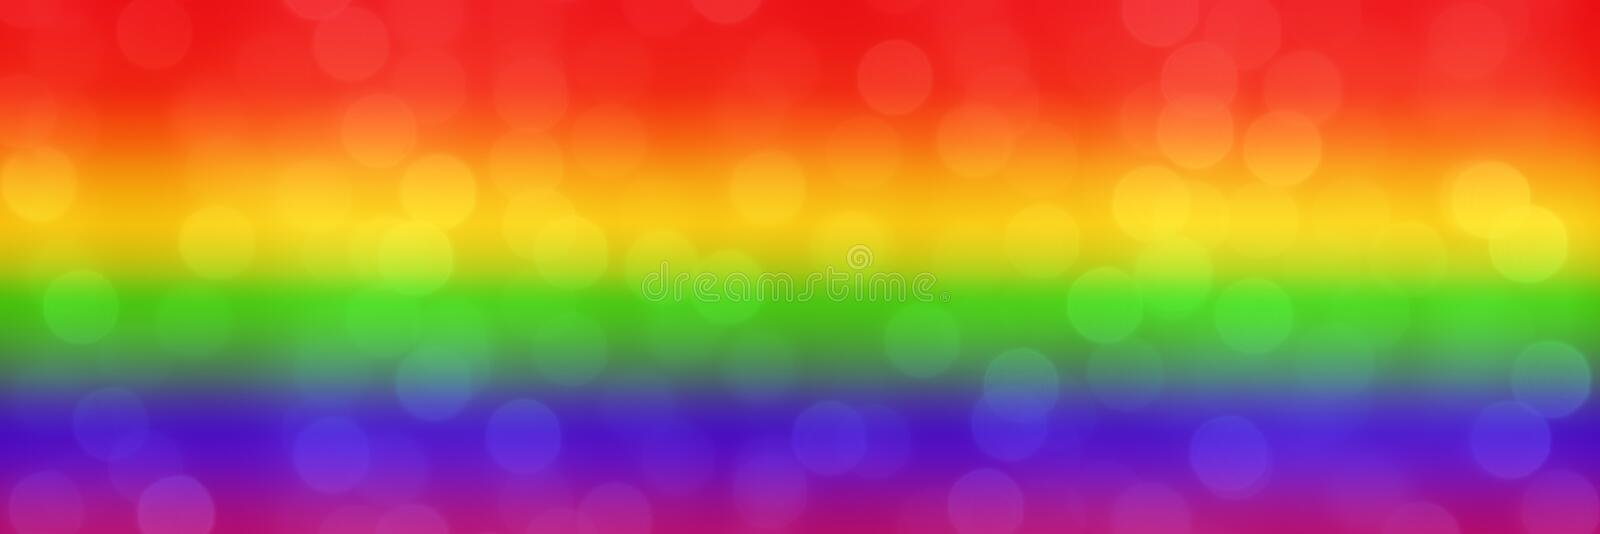 39 314 Lgbt Photos Free Royalty Free Stock Photos From Dreamstime